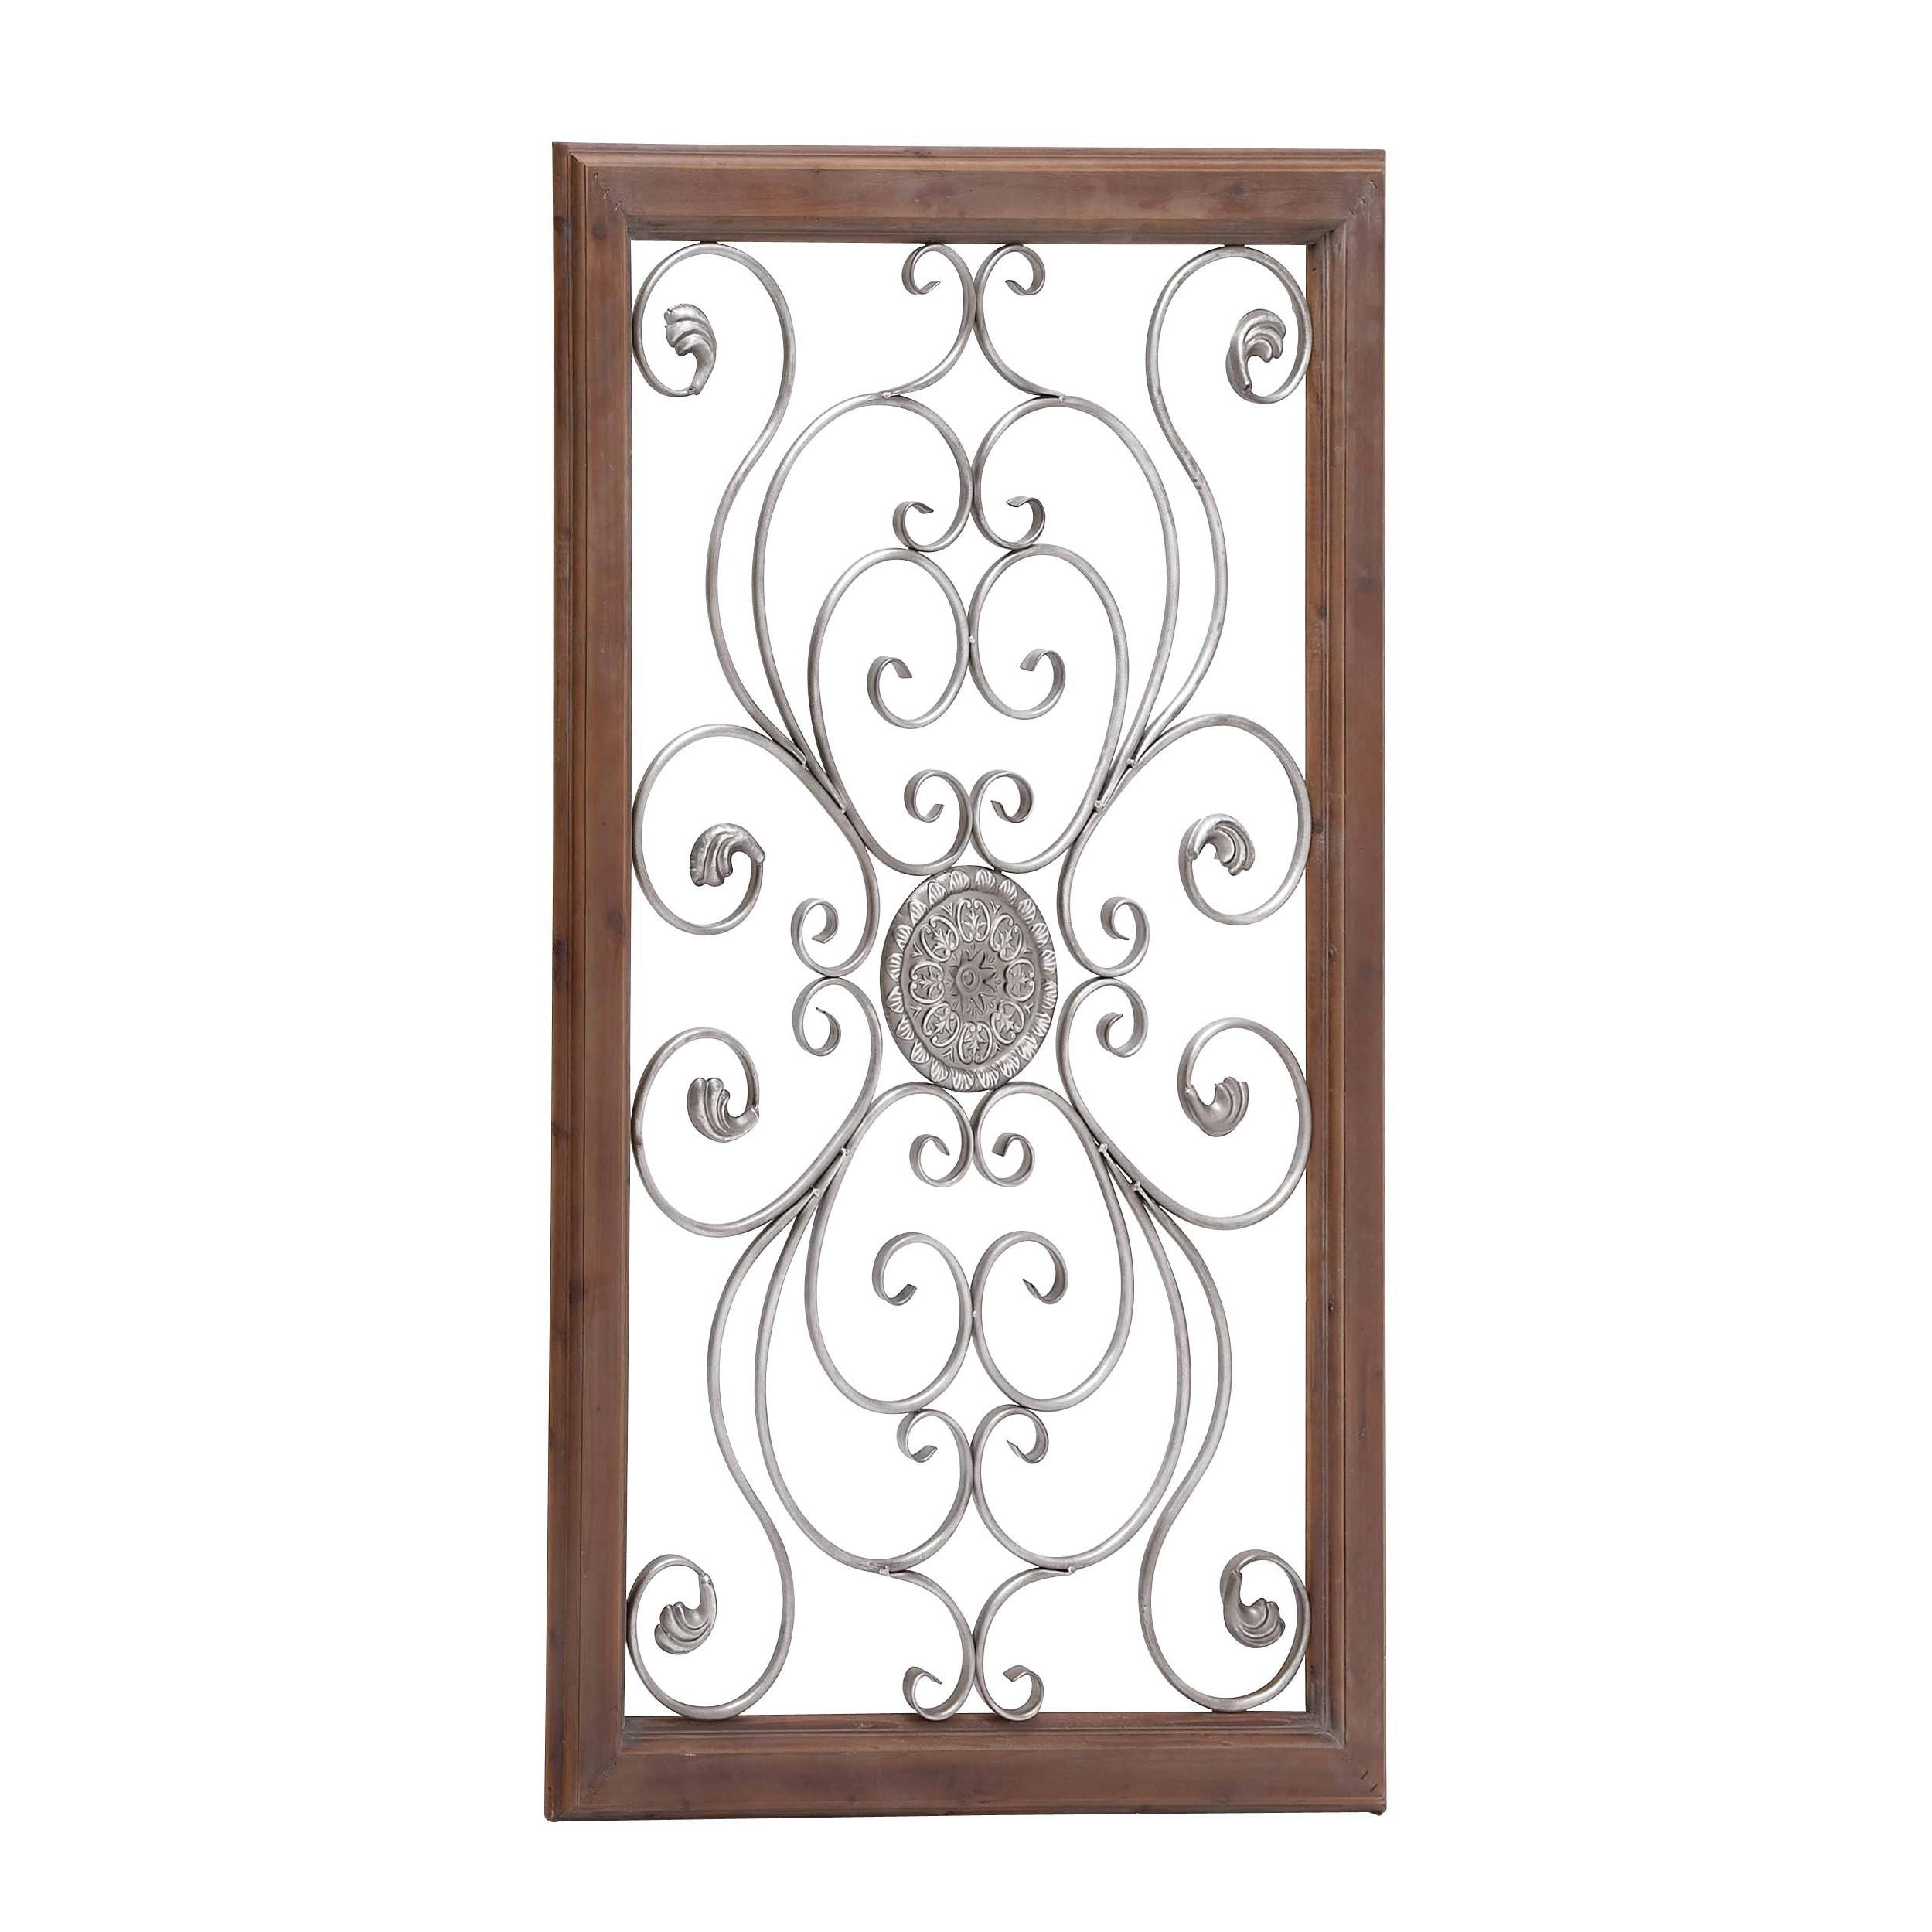 Large Metal Wall Decor | Roselawnlutheran In Most Recently Released Scrolled Metal Wall Art (View 8 of 20)